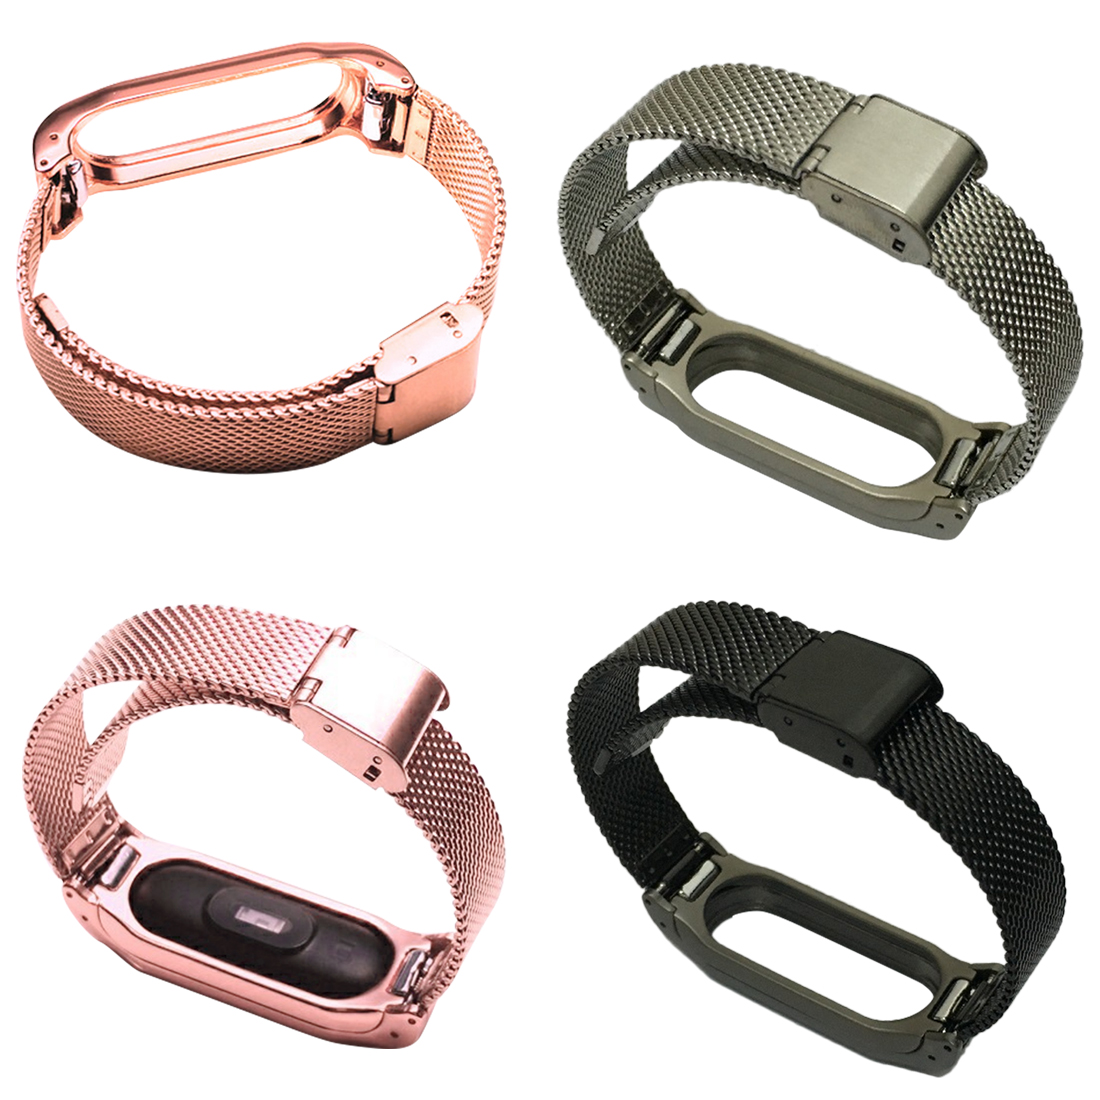 Metal Strap For Xiaomi Mi Band 2 Screwless Leather Straps Bracelet Wristband Magnetic Automatic Buckle For MiBand 2 Wristbands